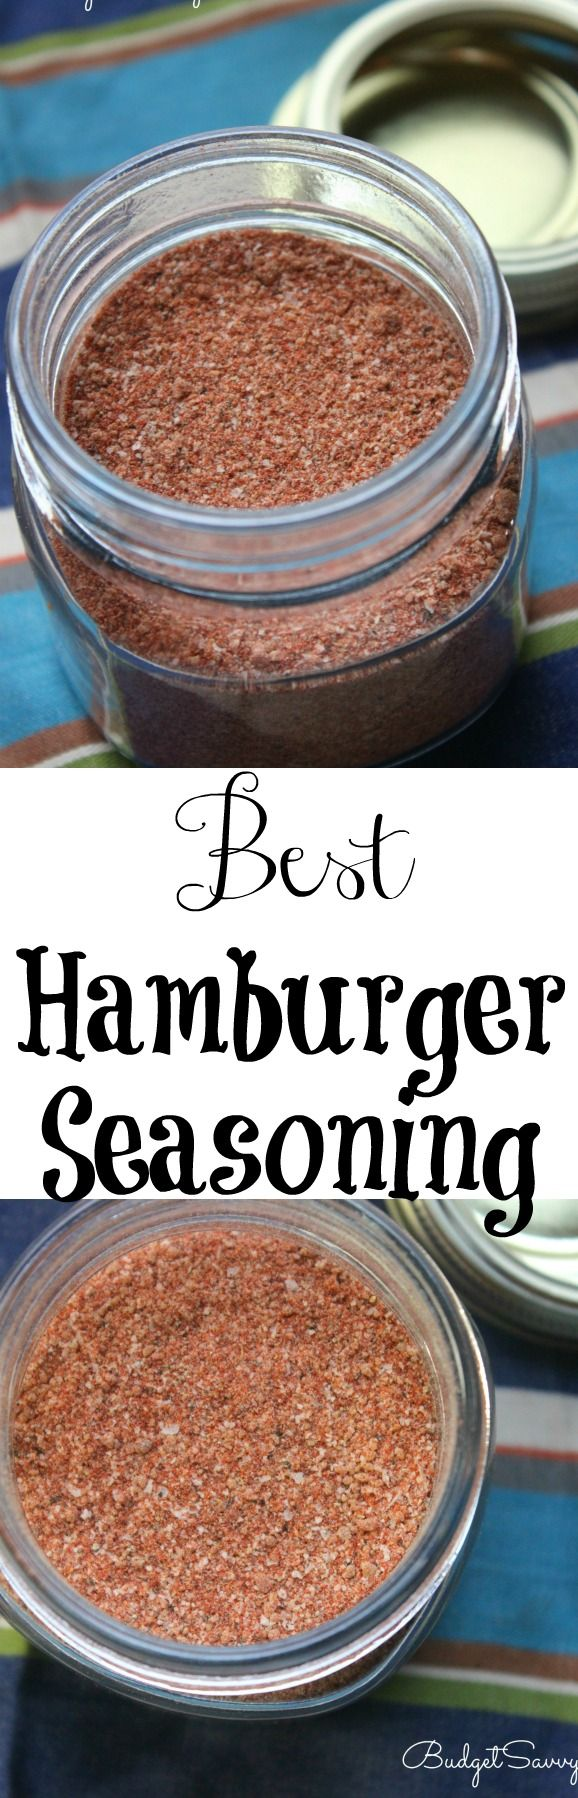 Best Hamburger Seasoning Recipe 1 teaspoon paprika 1 teaspoon ground black pepper ½ teaspoon salt ½ teaspoon dark brown sugar ⅛ teaspoon garlic powder ⅛ teaspoon onion powder ⅛ teaspoon ground cayenne pepper Instructions Combine all ingredients together